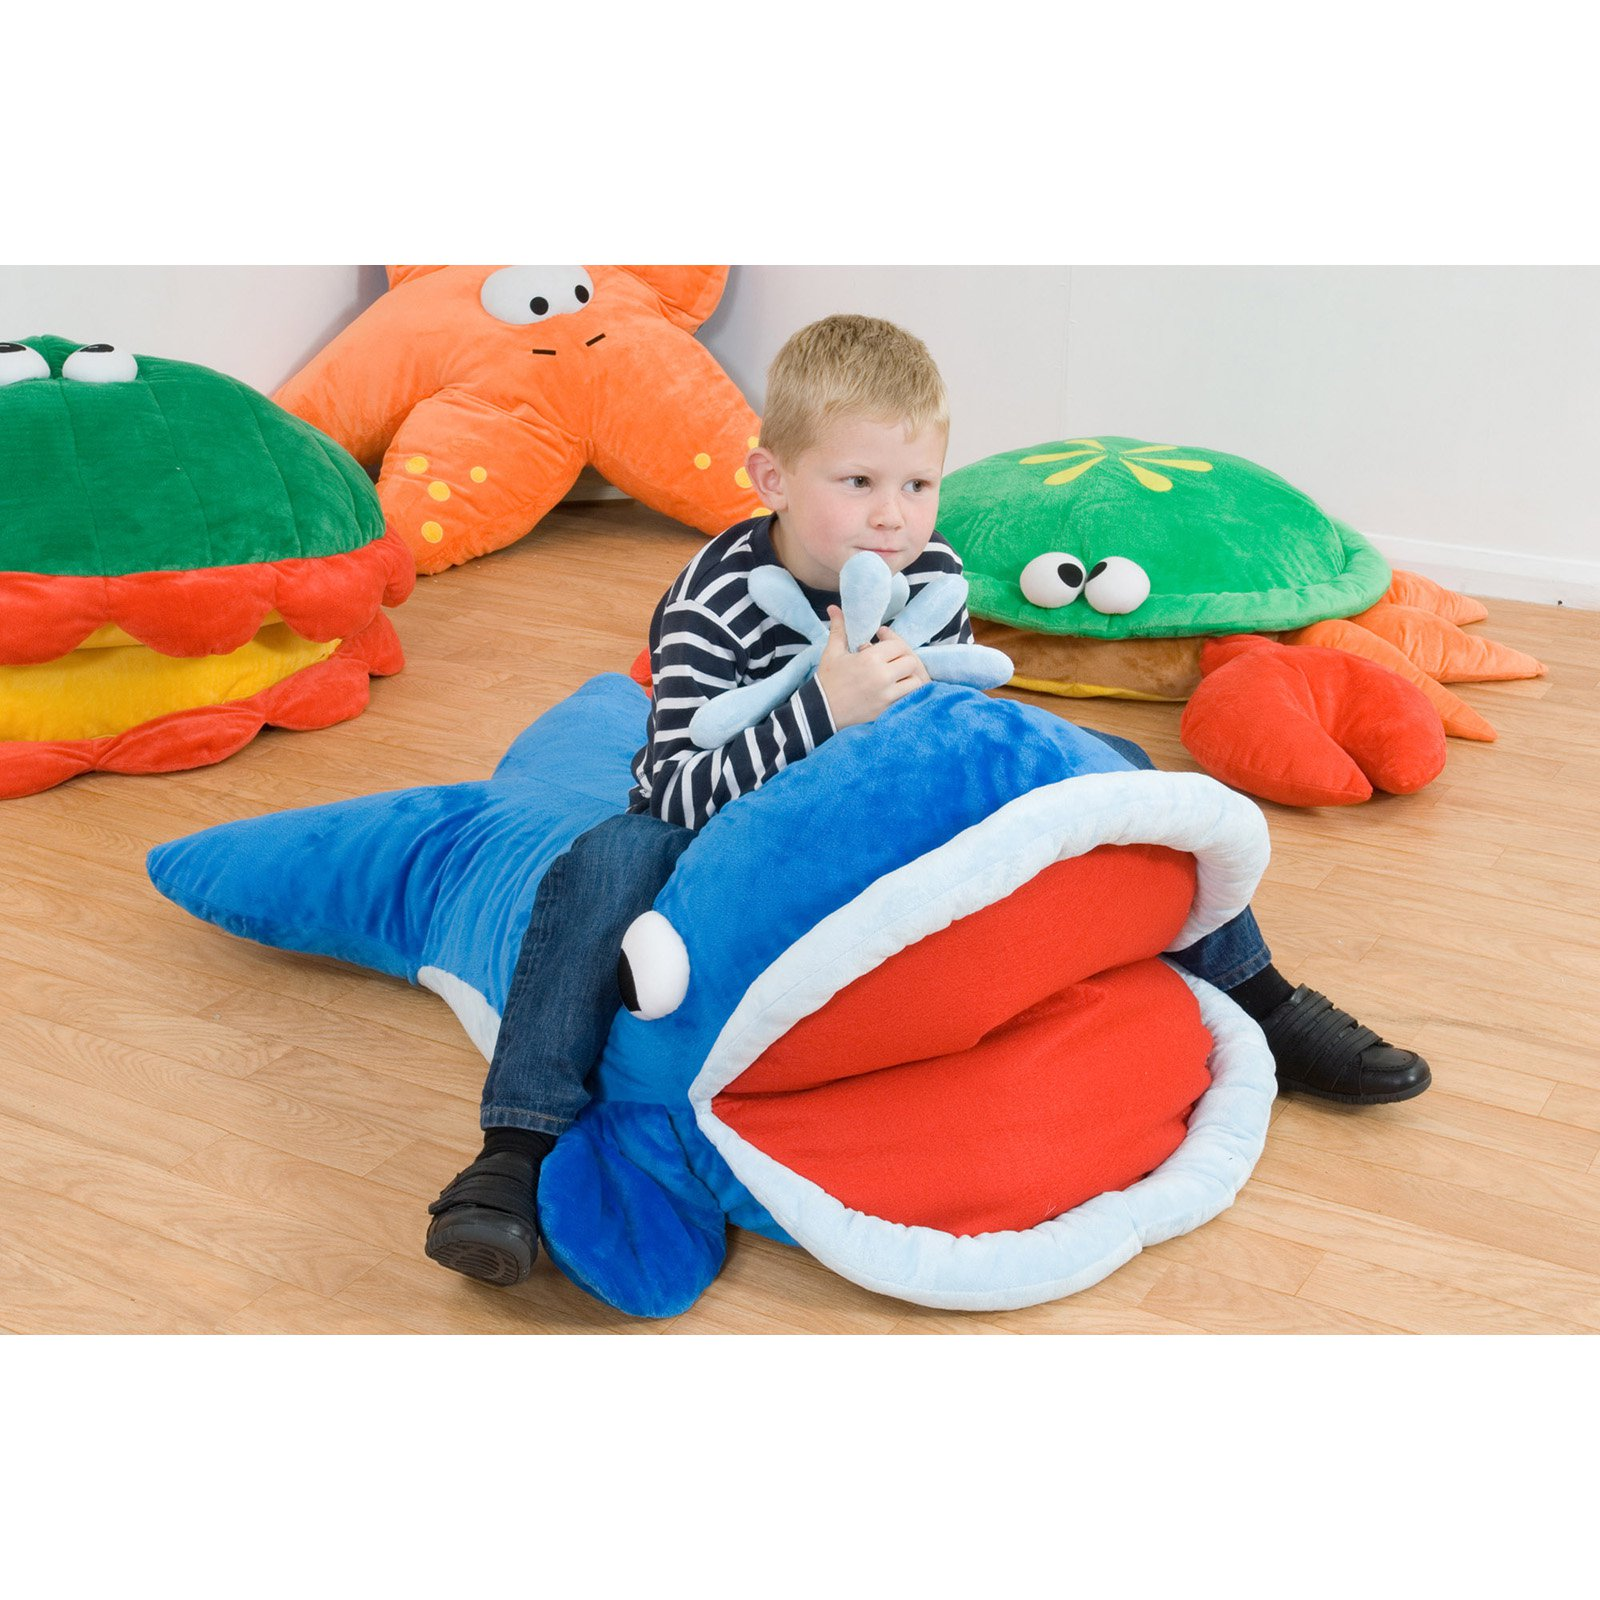 Kalokids Moby Whale Giant Floor Cushion